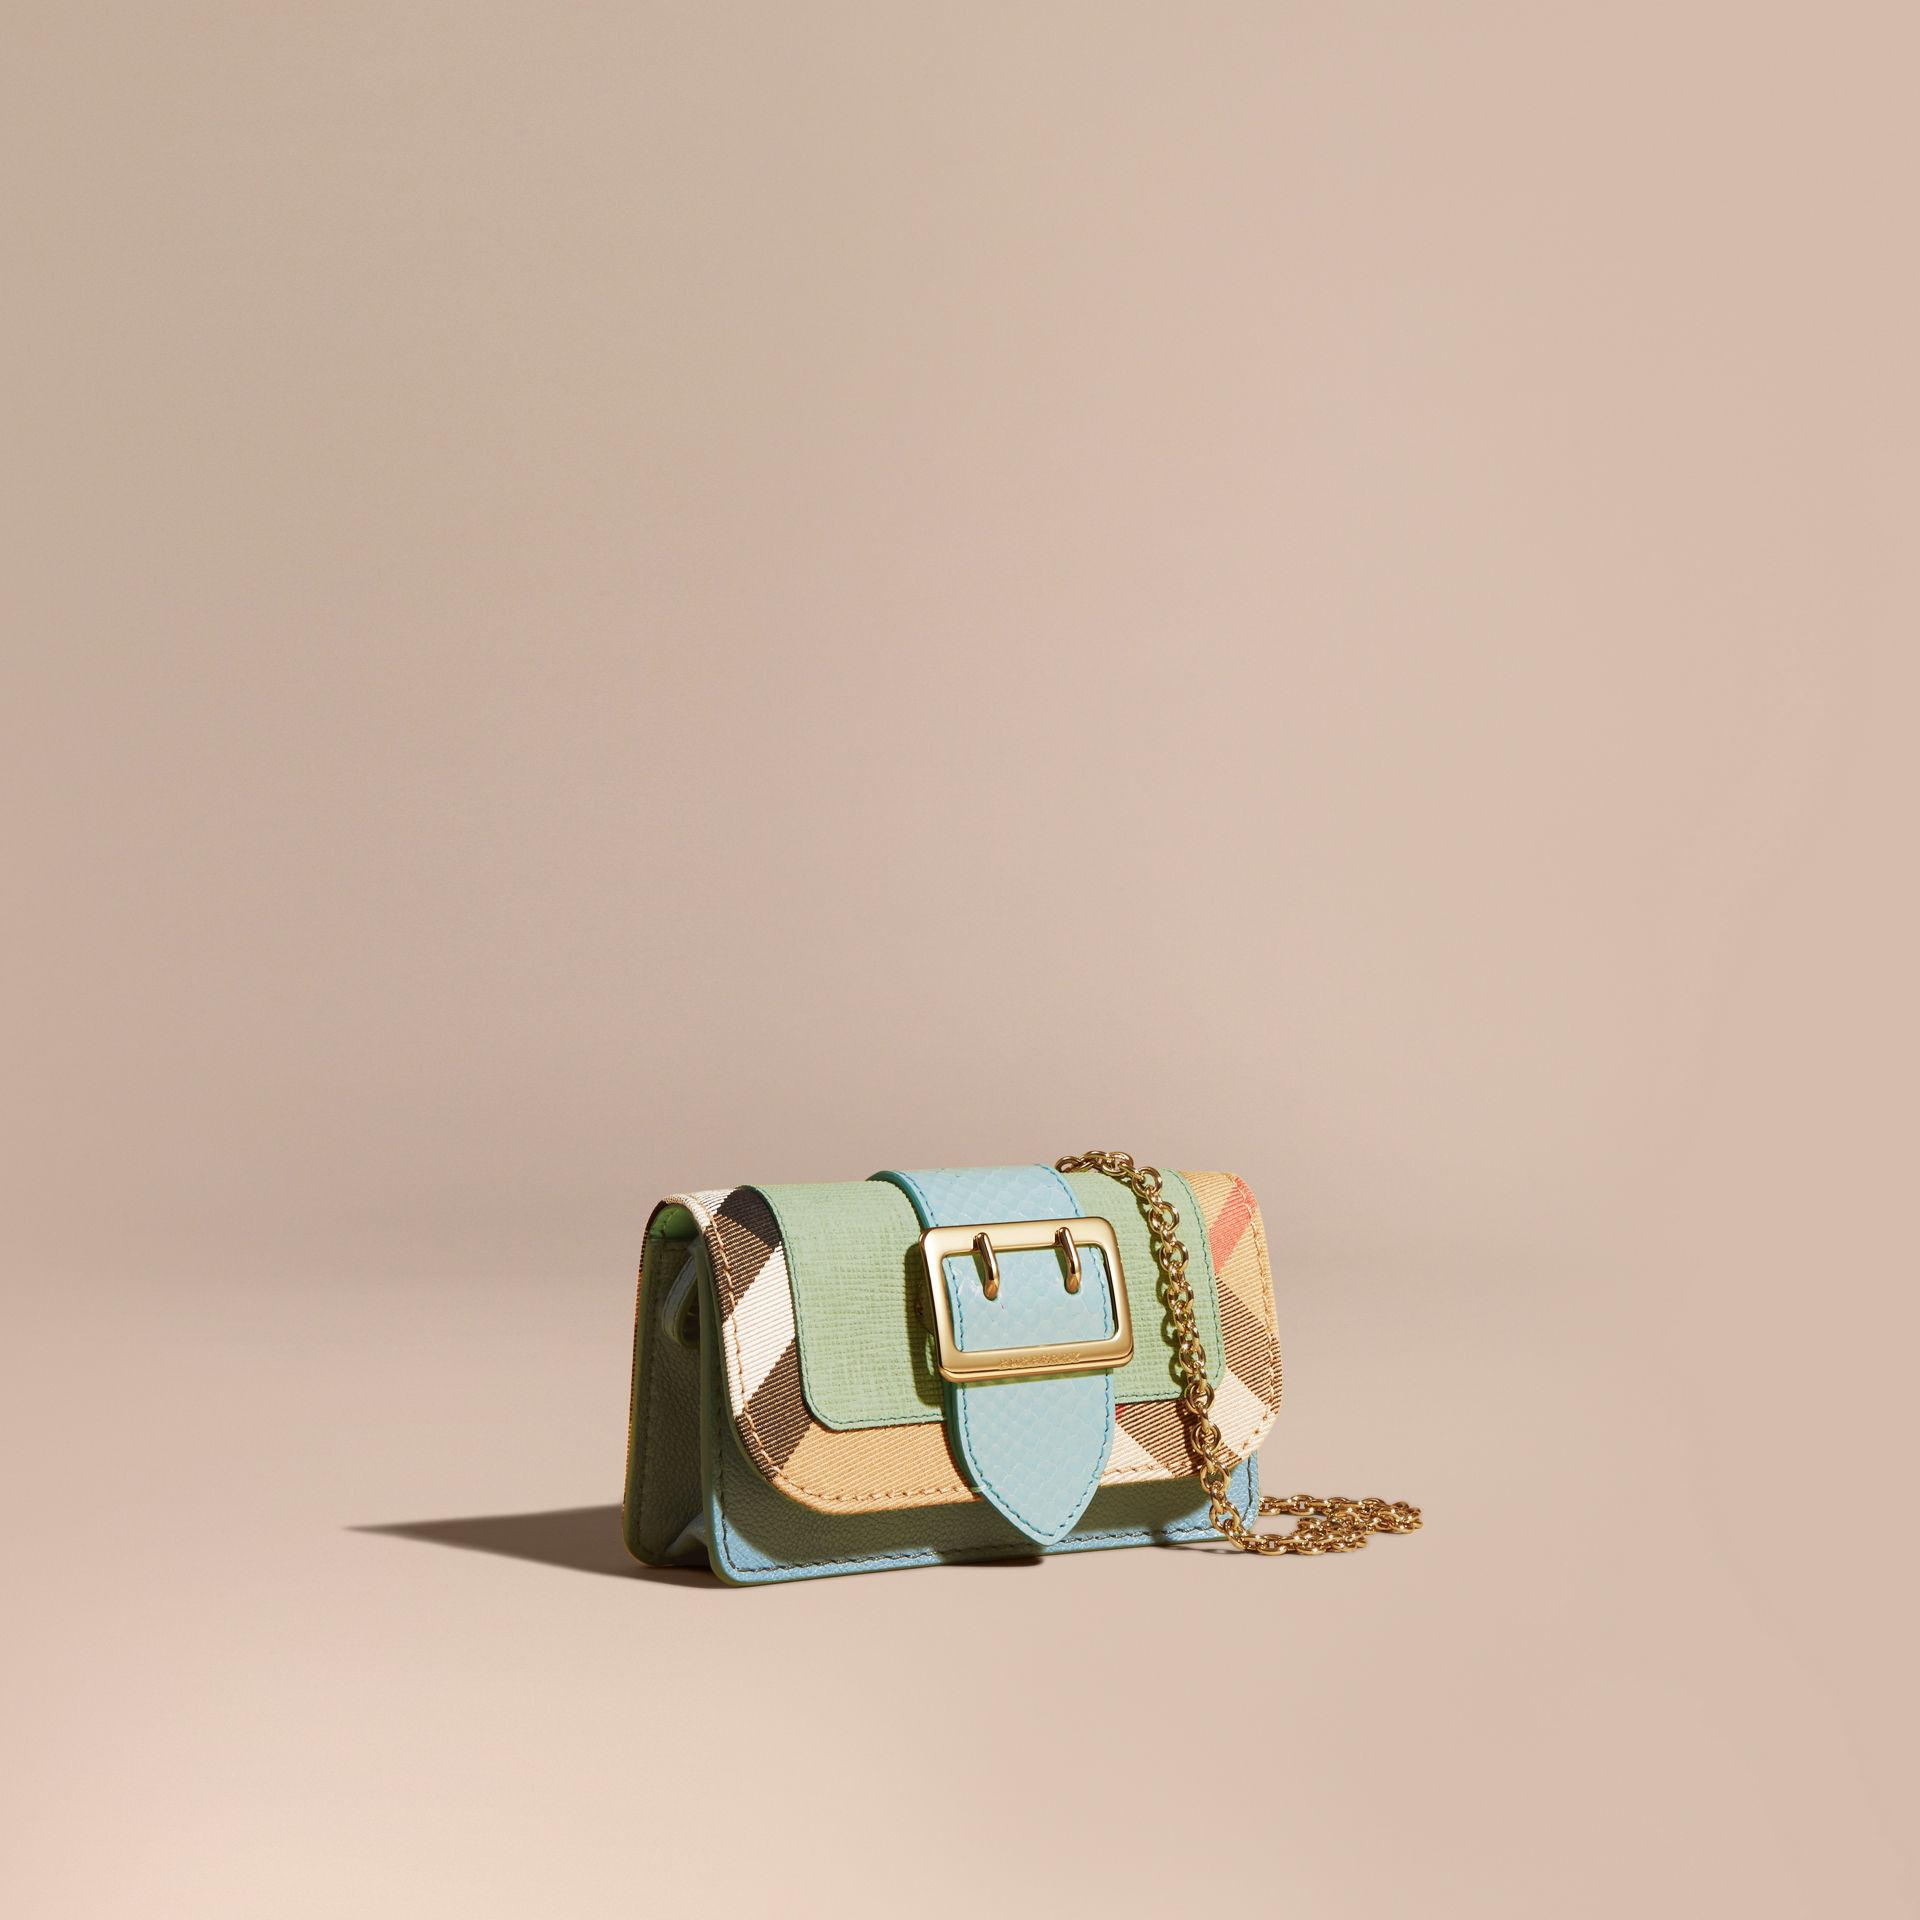 Burberry The Mini Buckle Bag In Snakeskin And House Check - Lyst 01152071f8